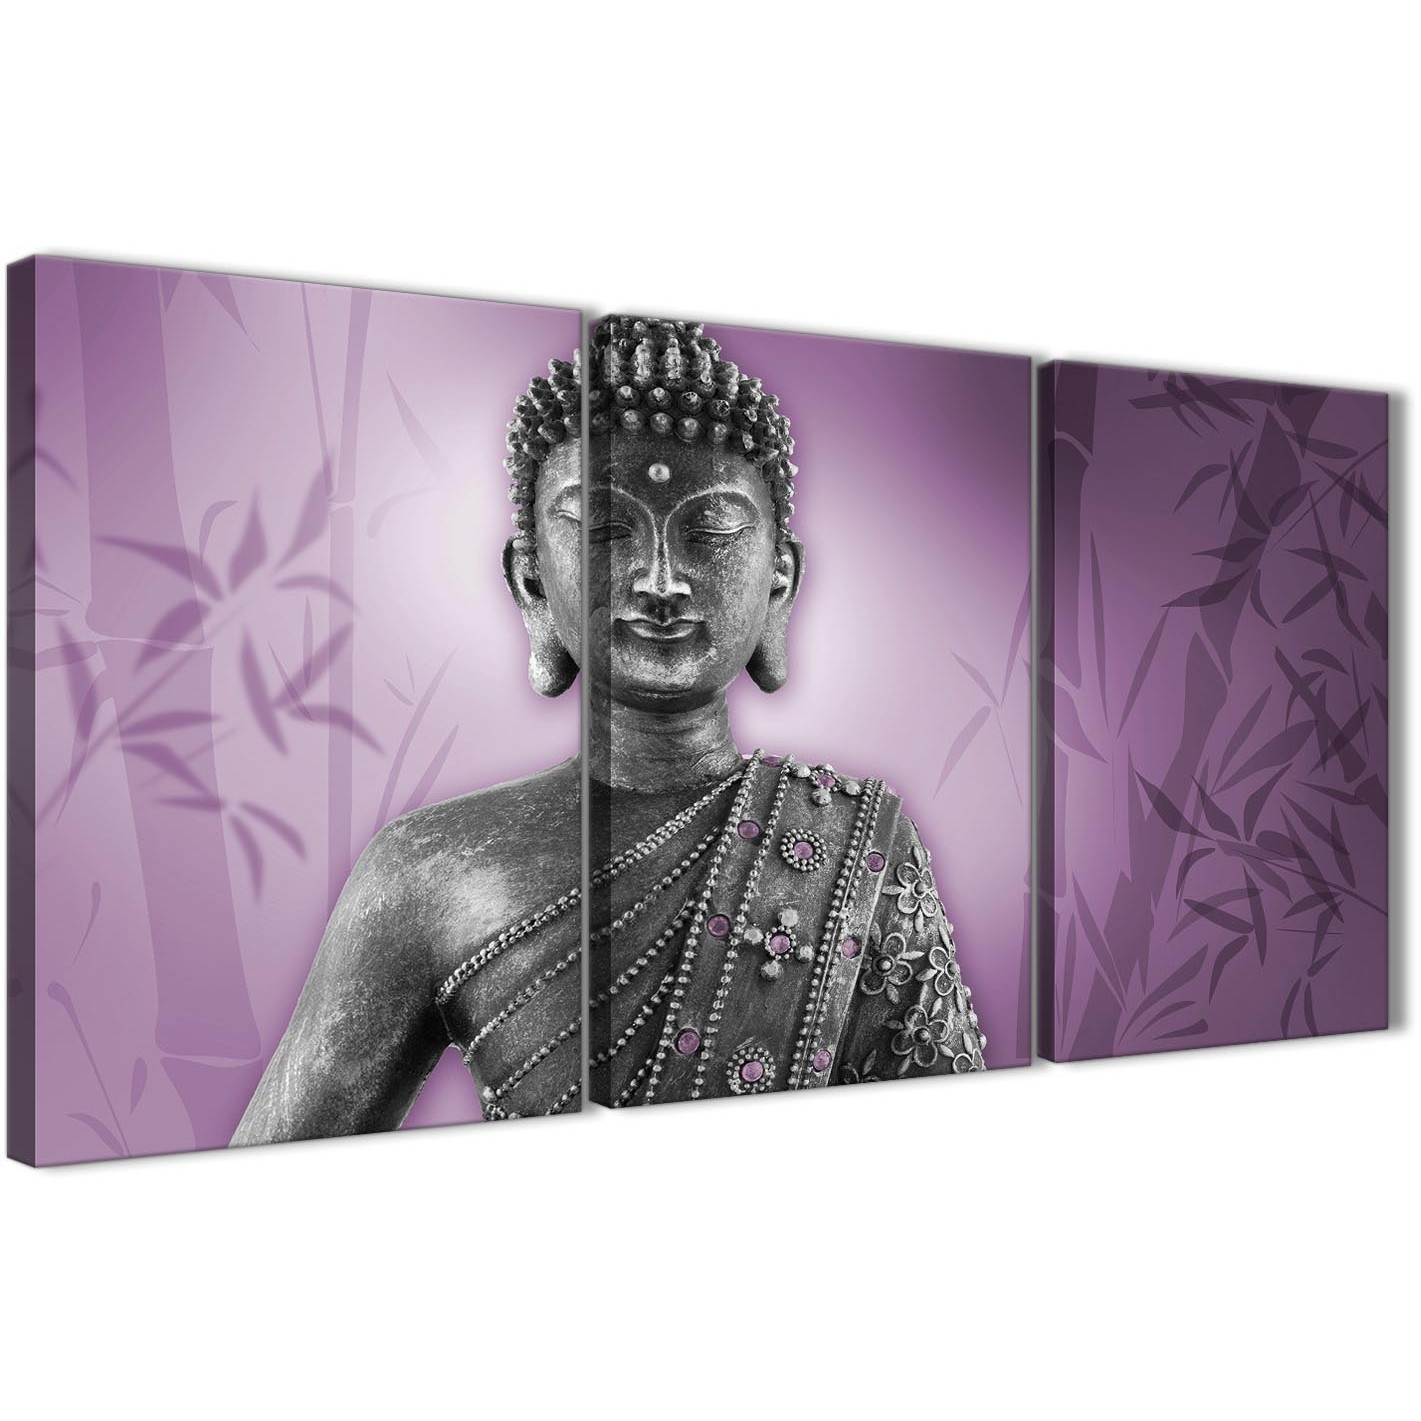 Purple And Grey Silver Canvas Art Prints Of Buddha – Multi Set Of 3 Pertaining To Most Recent Wall Art Prints (View 18 of 20)